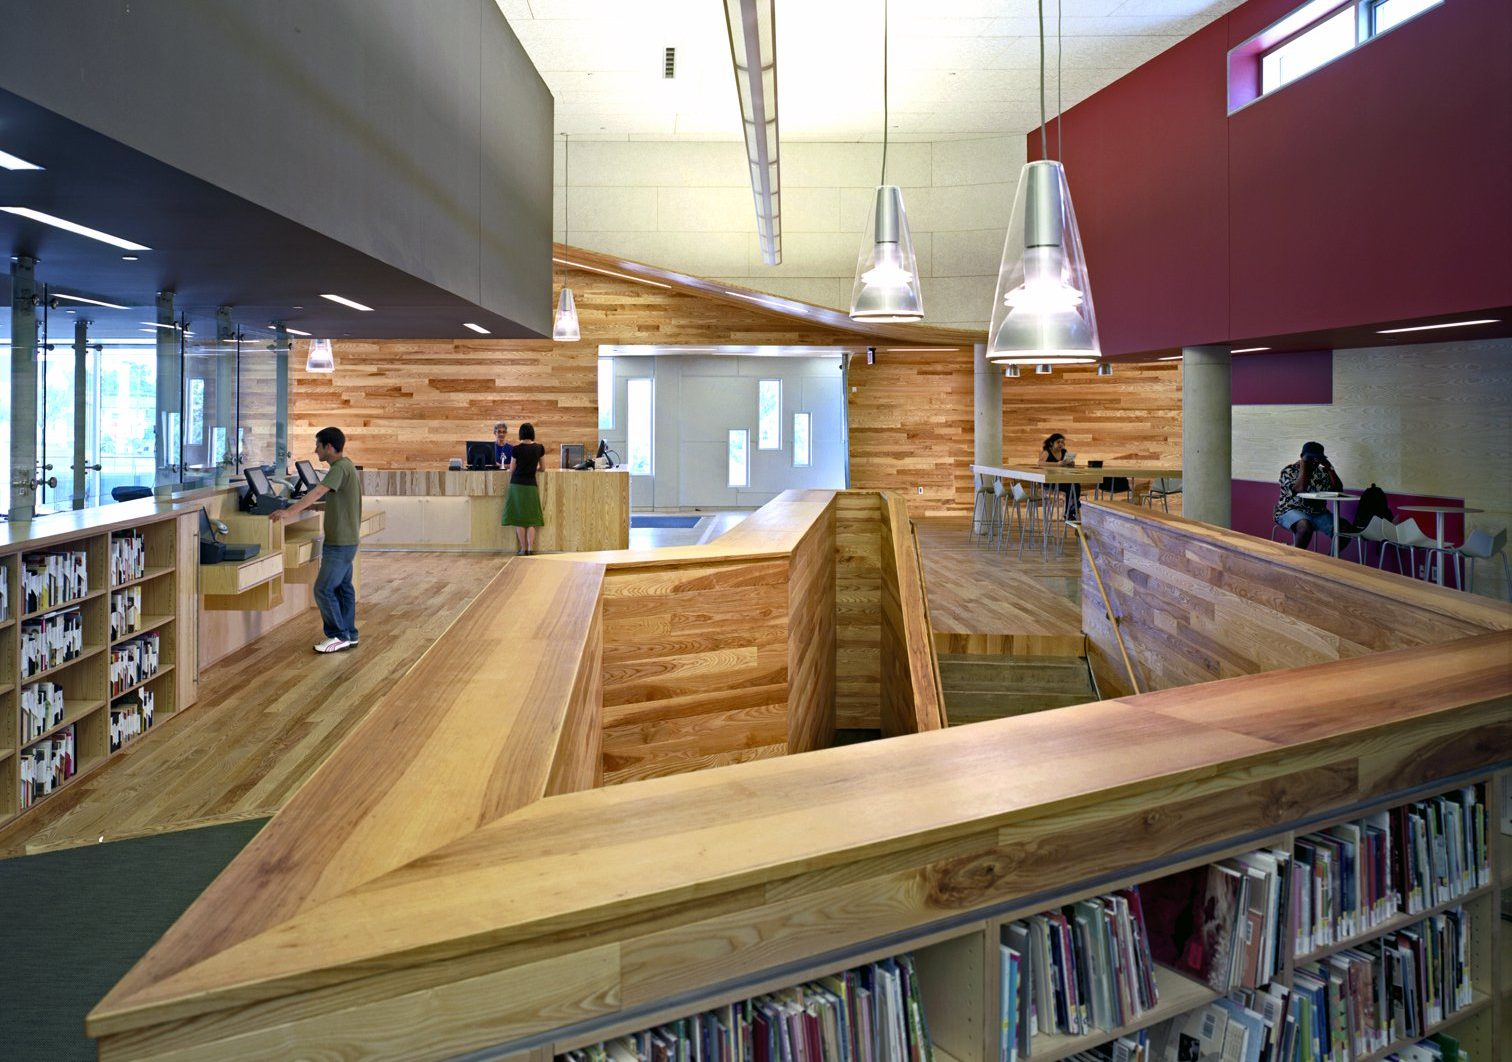 Interior view of ash wood stair at Traverwood Branch of Ann Arbor District Library System Project in Michigan Architecture Interior Design and Sustainable Design